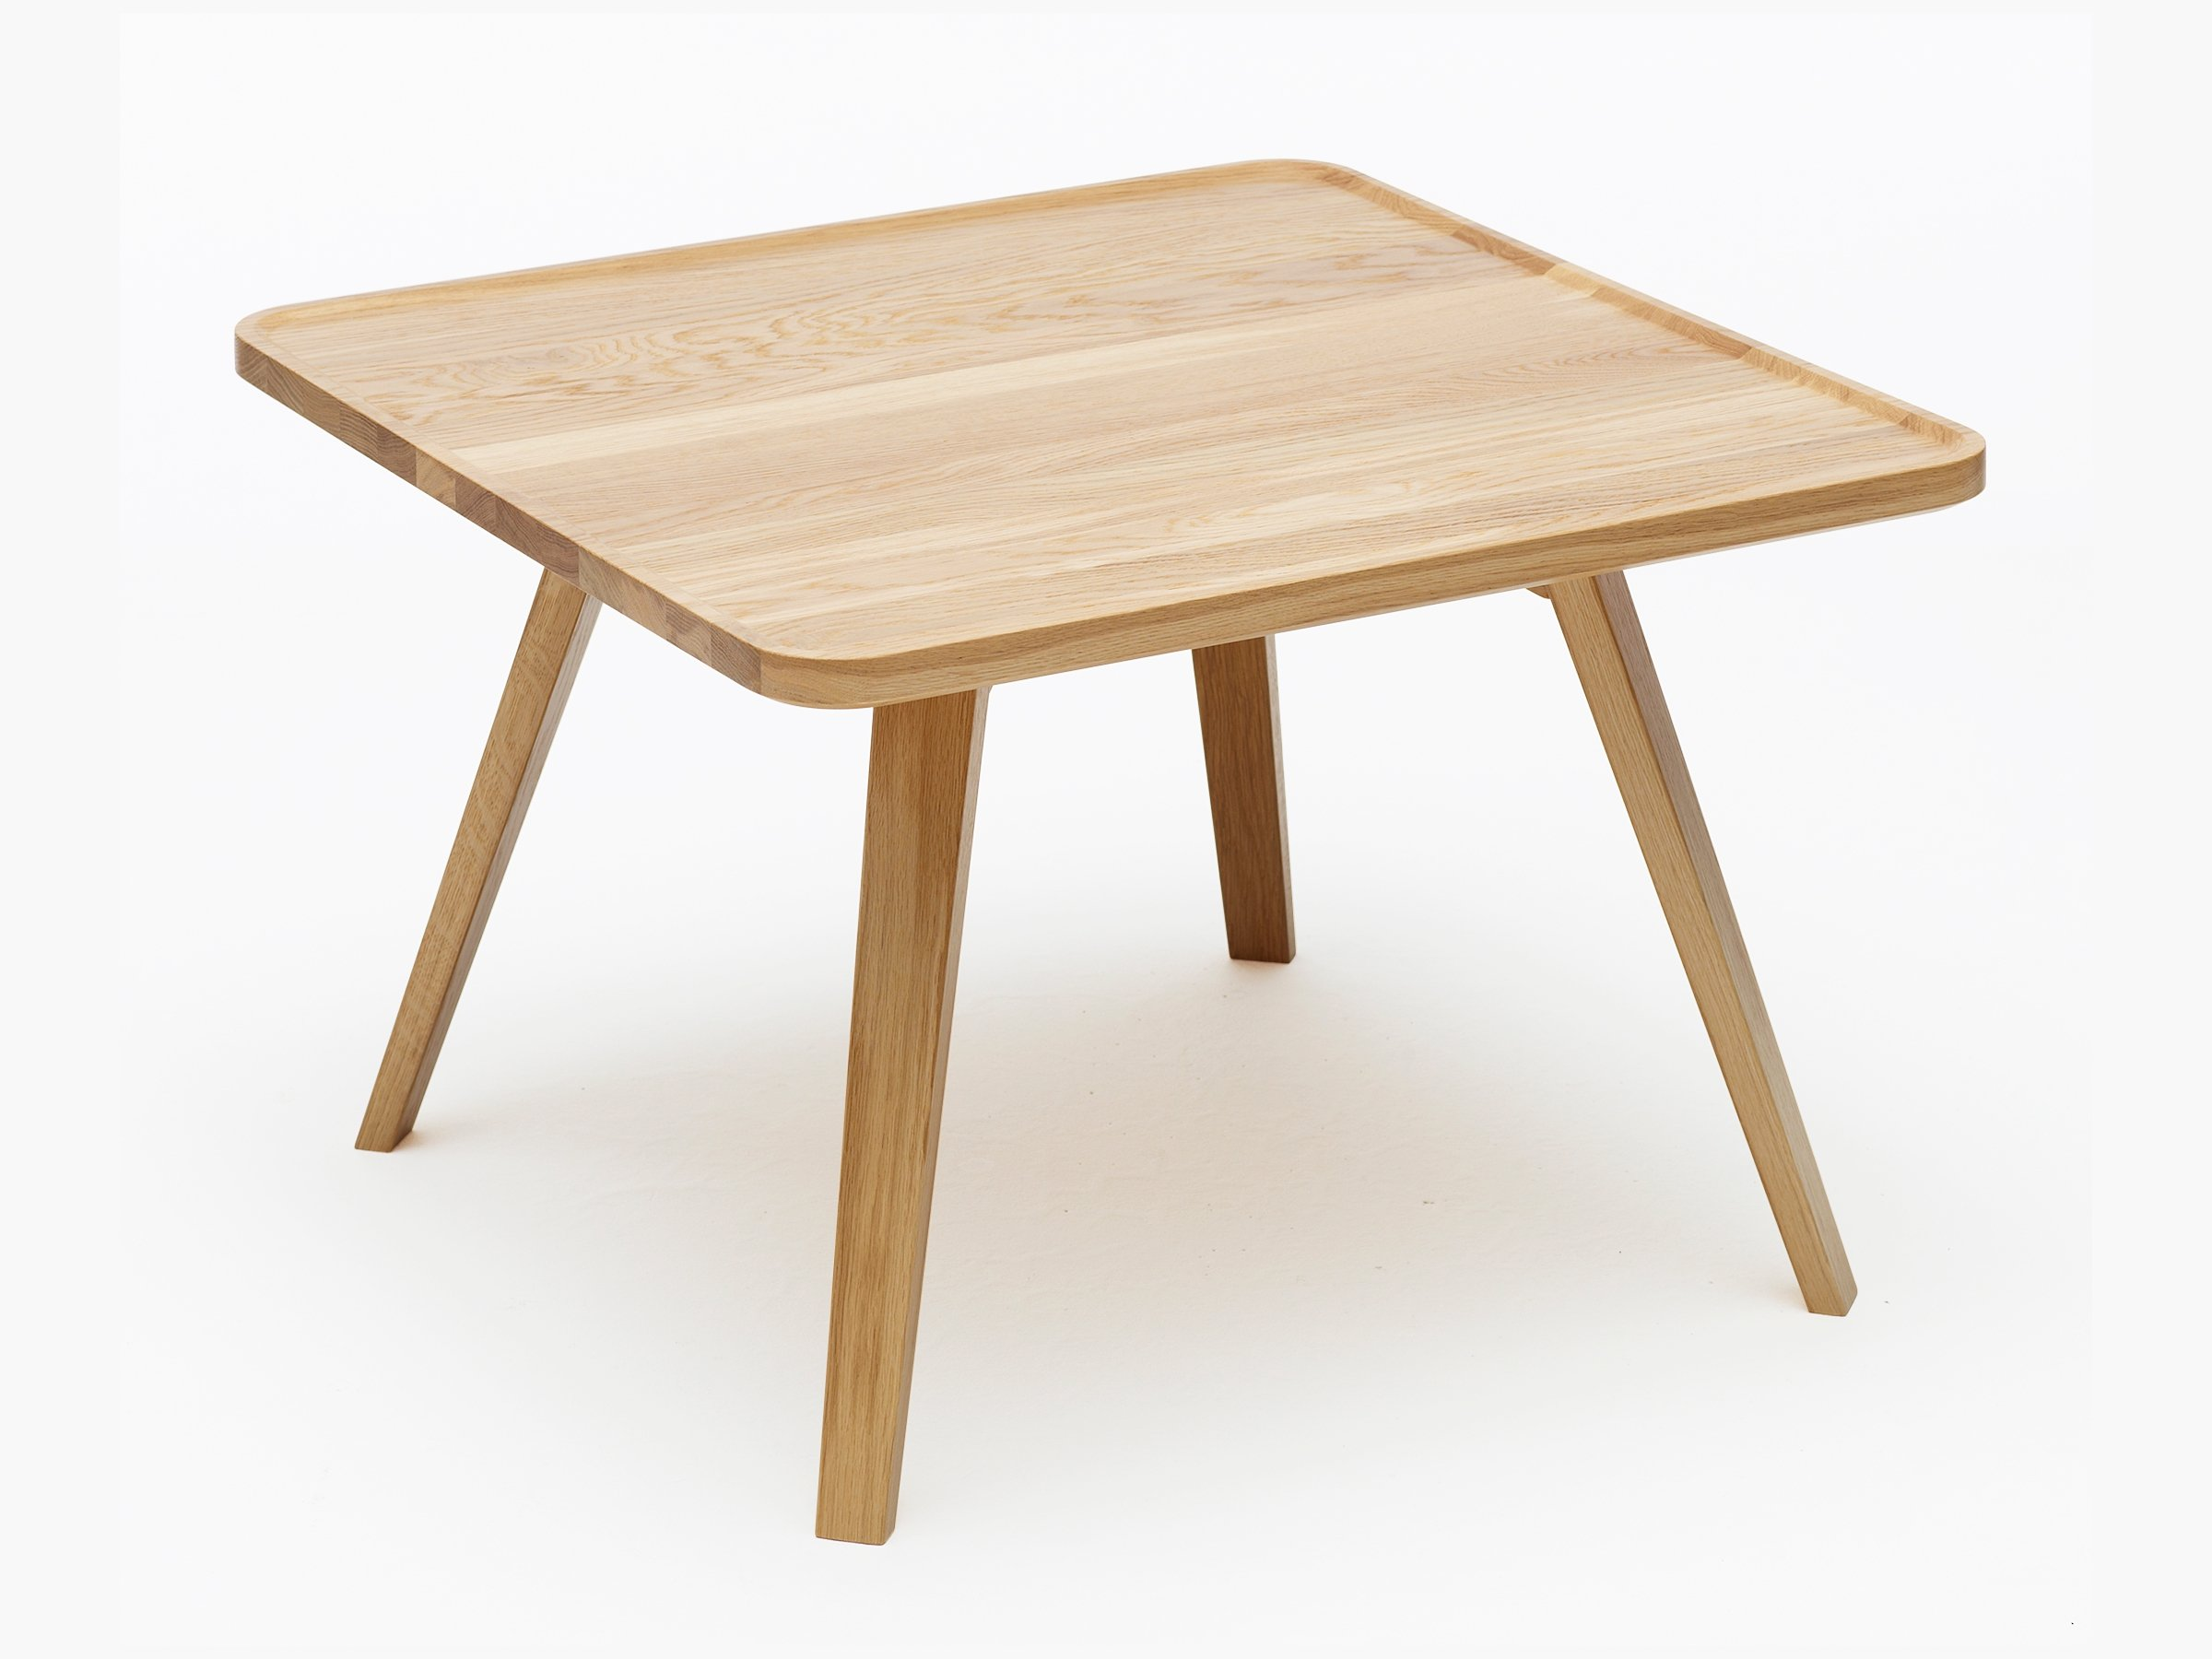 Mill table basse carr e by karl andersson s ner design roger persson - Table basse carree bois massif ...